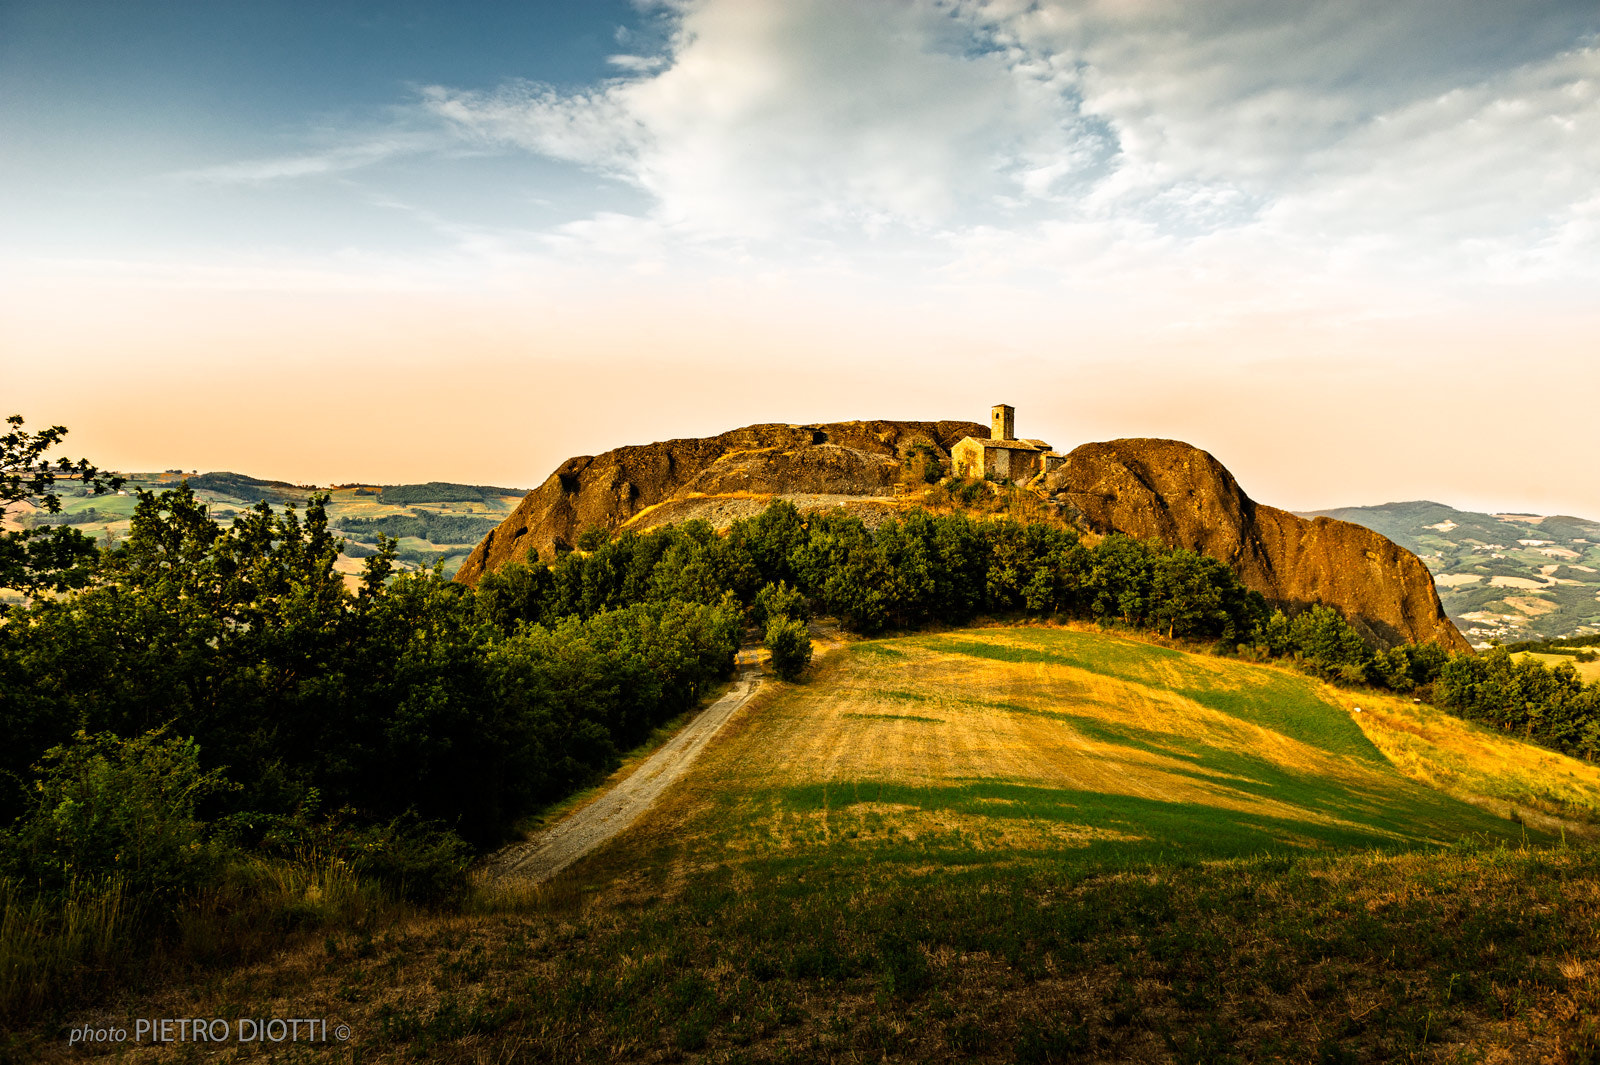 Photograph Travo, Appennini, Italy by Pietro Diotti on 500px